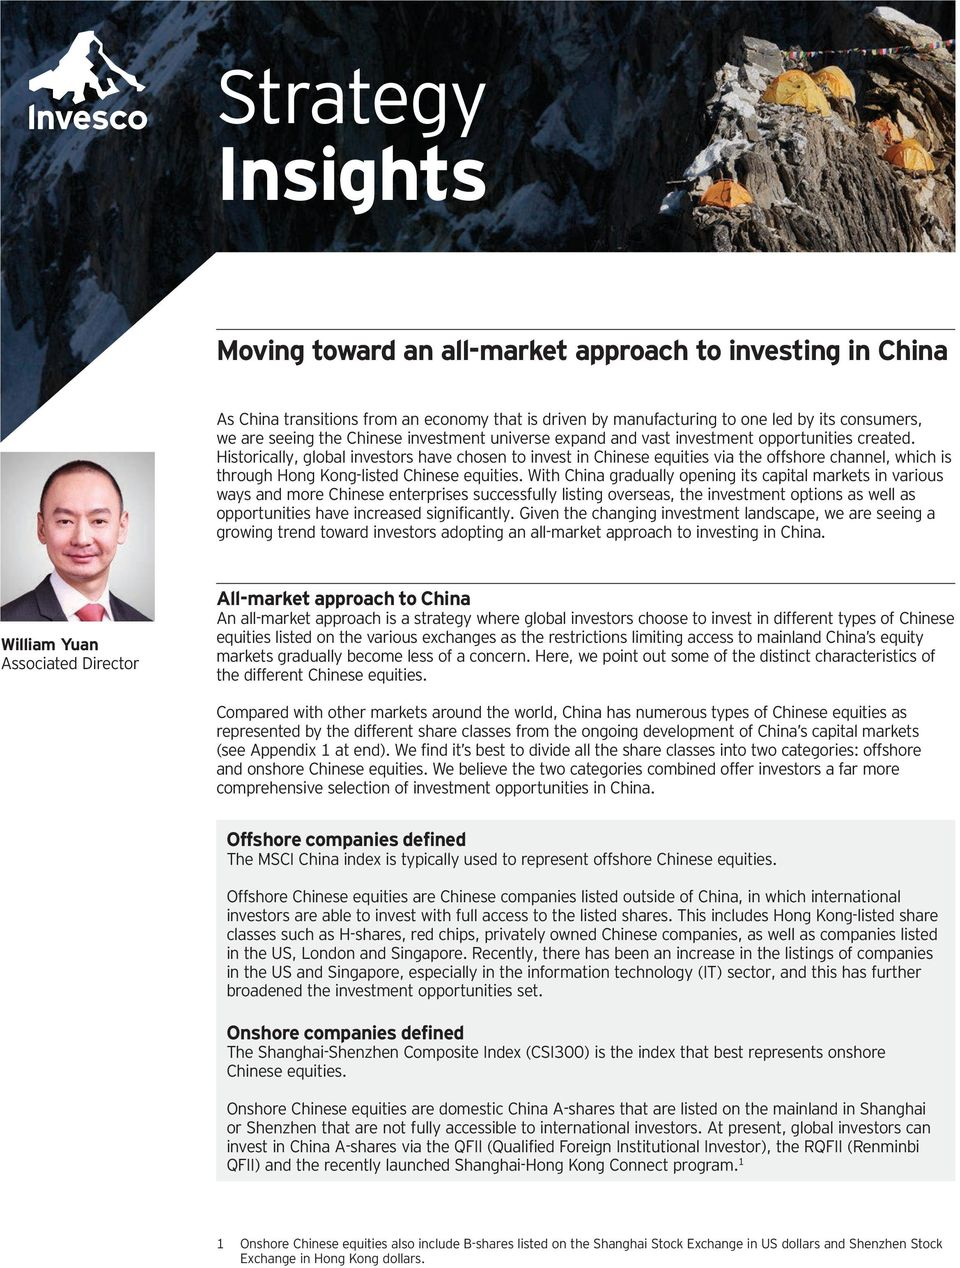 Historically, global investors have chosen to invest in Chinese equities via the offshore channel, which is through Hong Kong-listed Chinese equities.